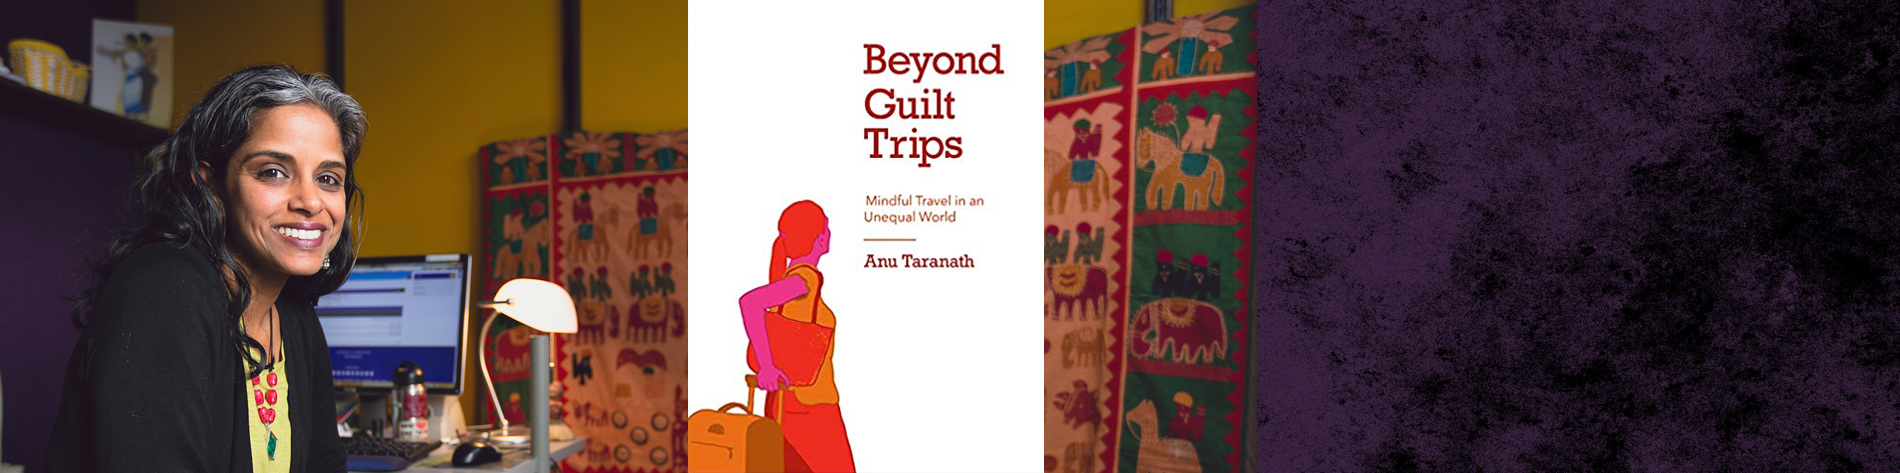 Anu Taranath with book cover, Beyond Guilt Trips